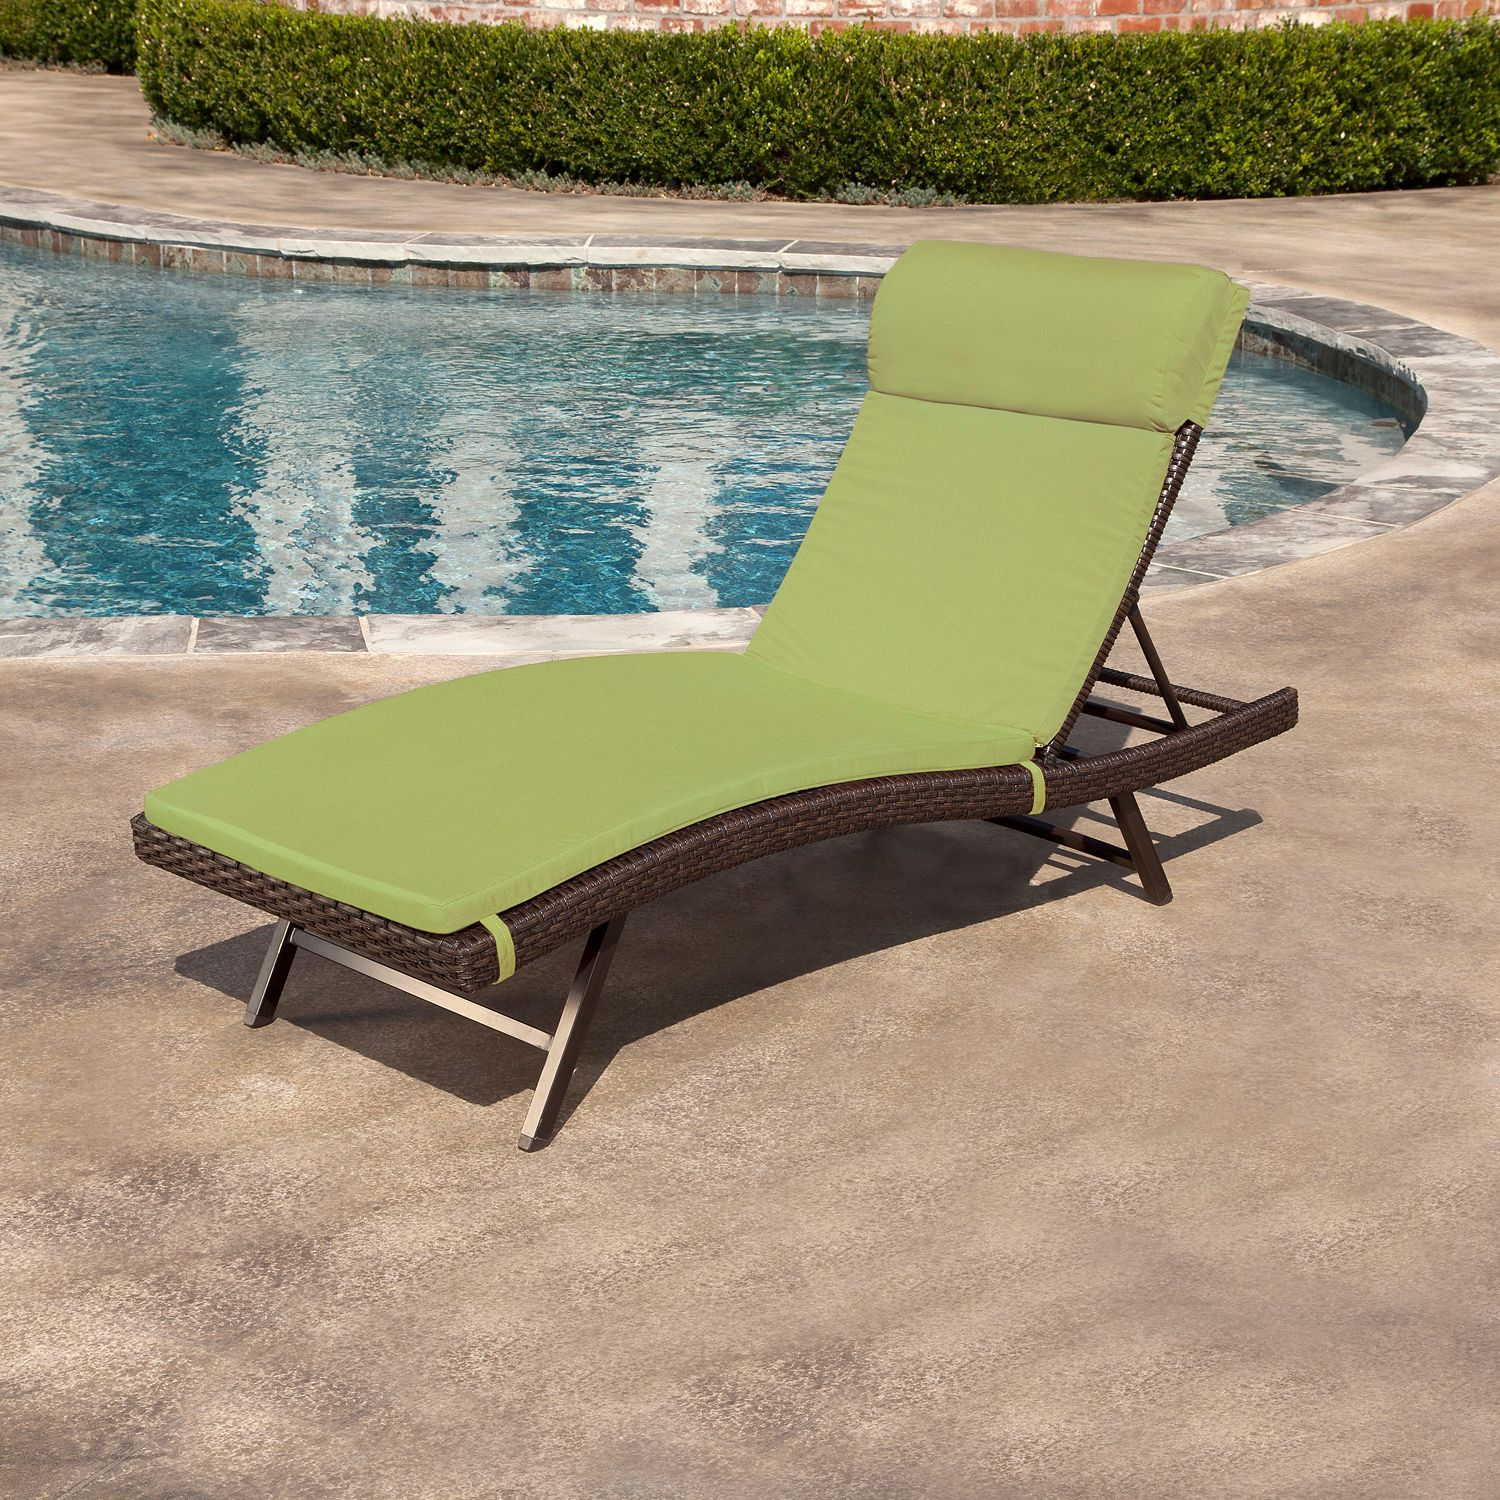 Toronto Outdoor Chaise Cushion Canvas Turf 2 Pk Sam S Club Chaise Cushions Outdoor Chaise Cushions Cushions